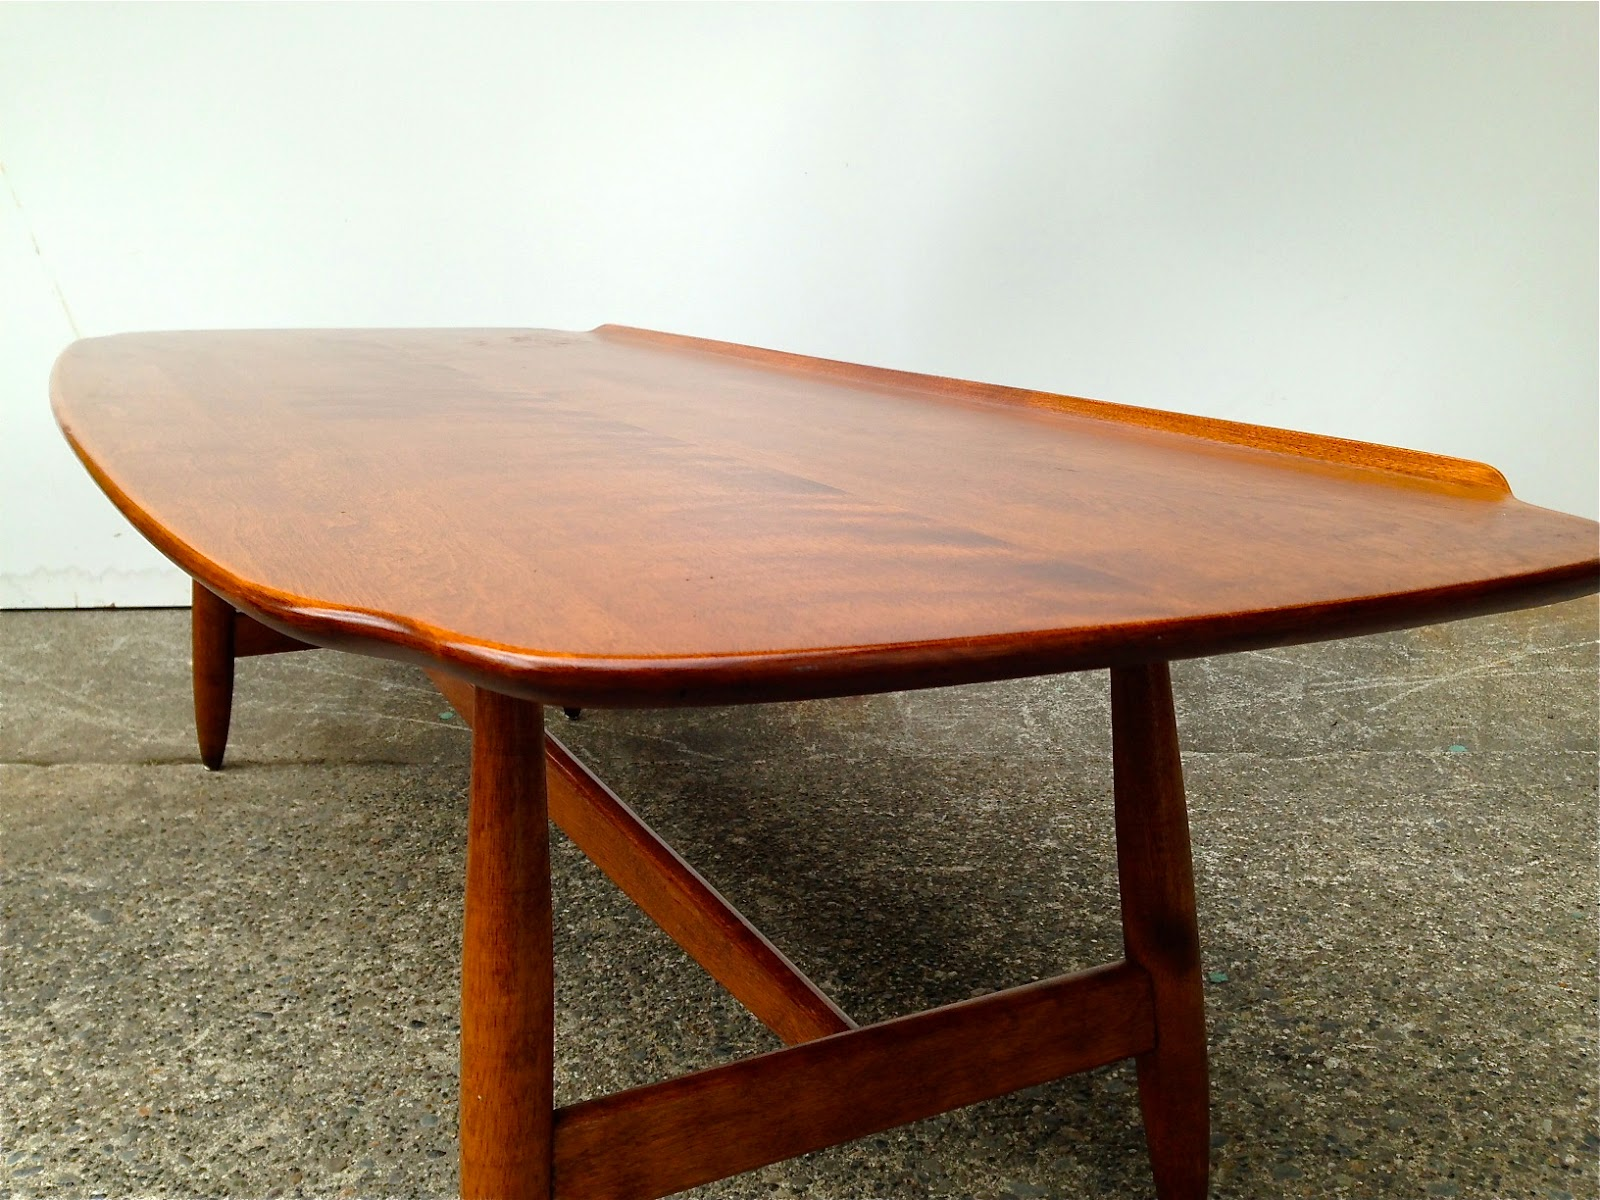 SPARKLEBARN MID CENTURY MAPLE SURFBOARD COFFEE TABLE by CONANT BALL